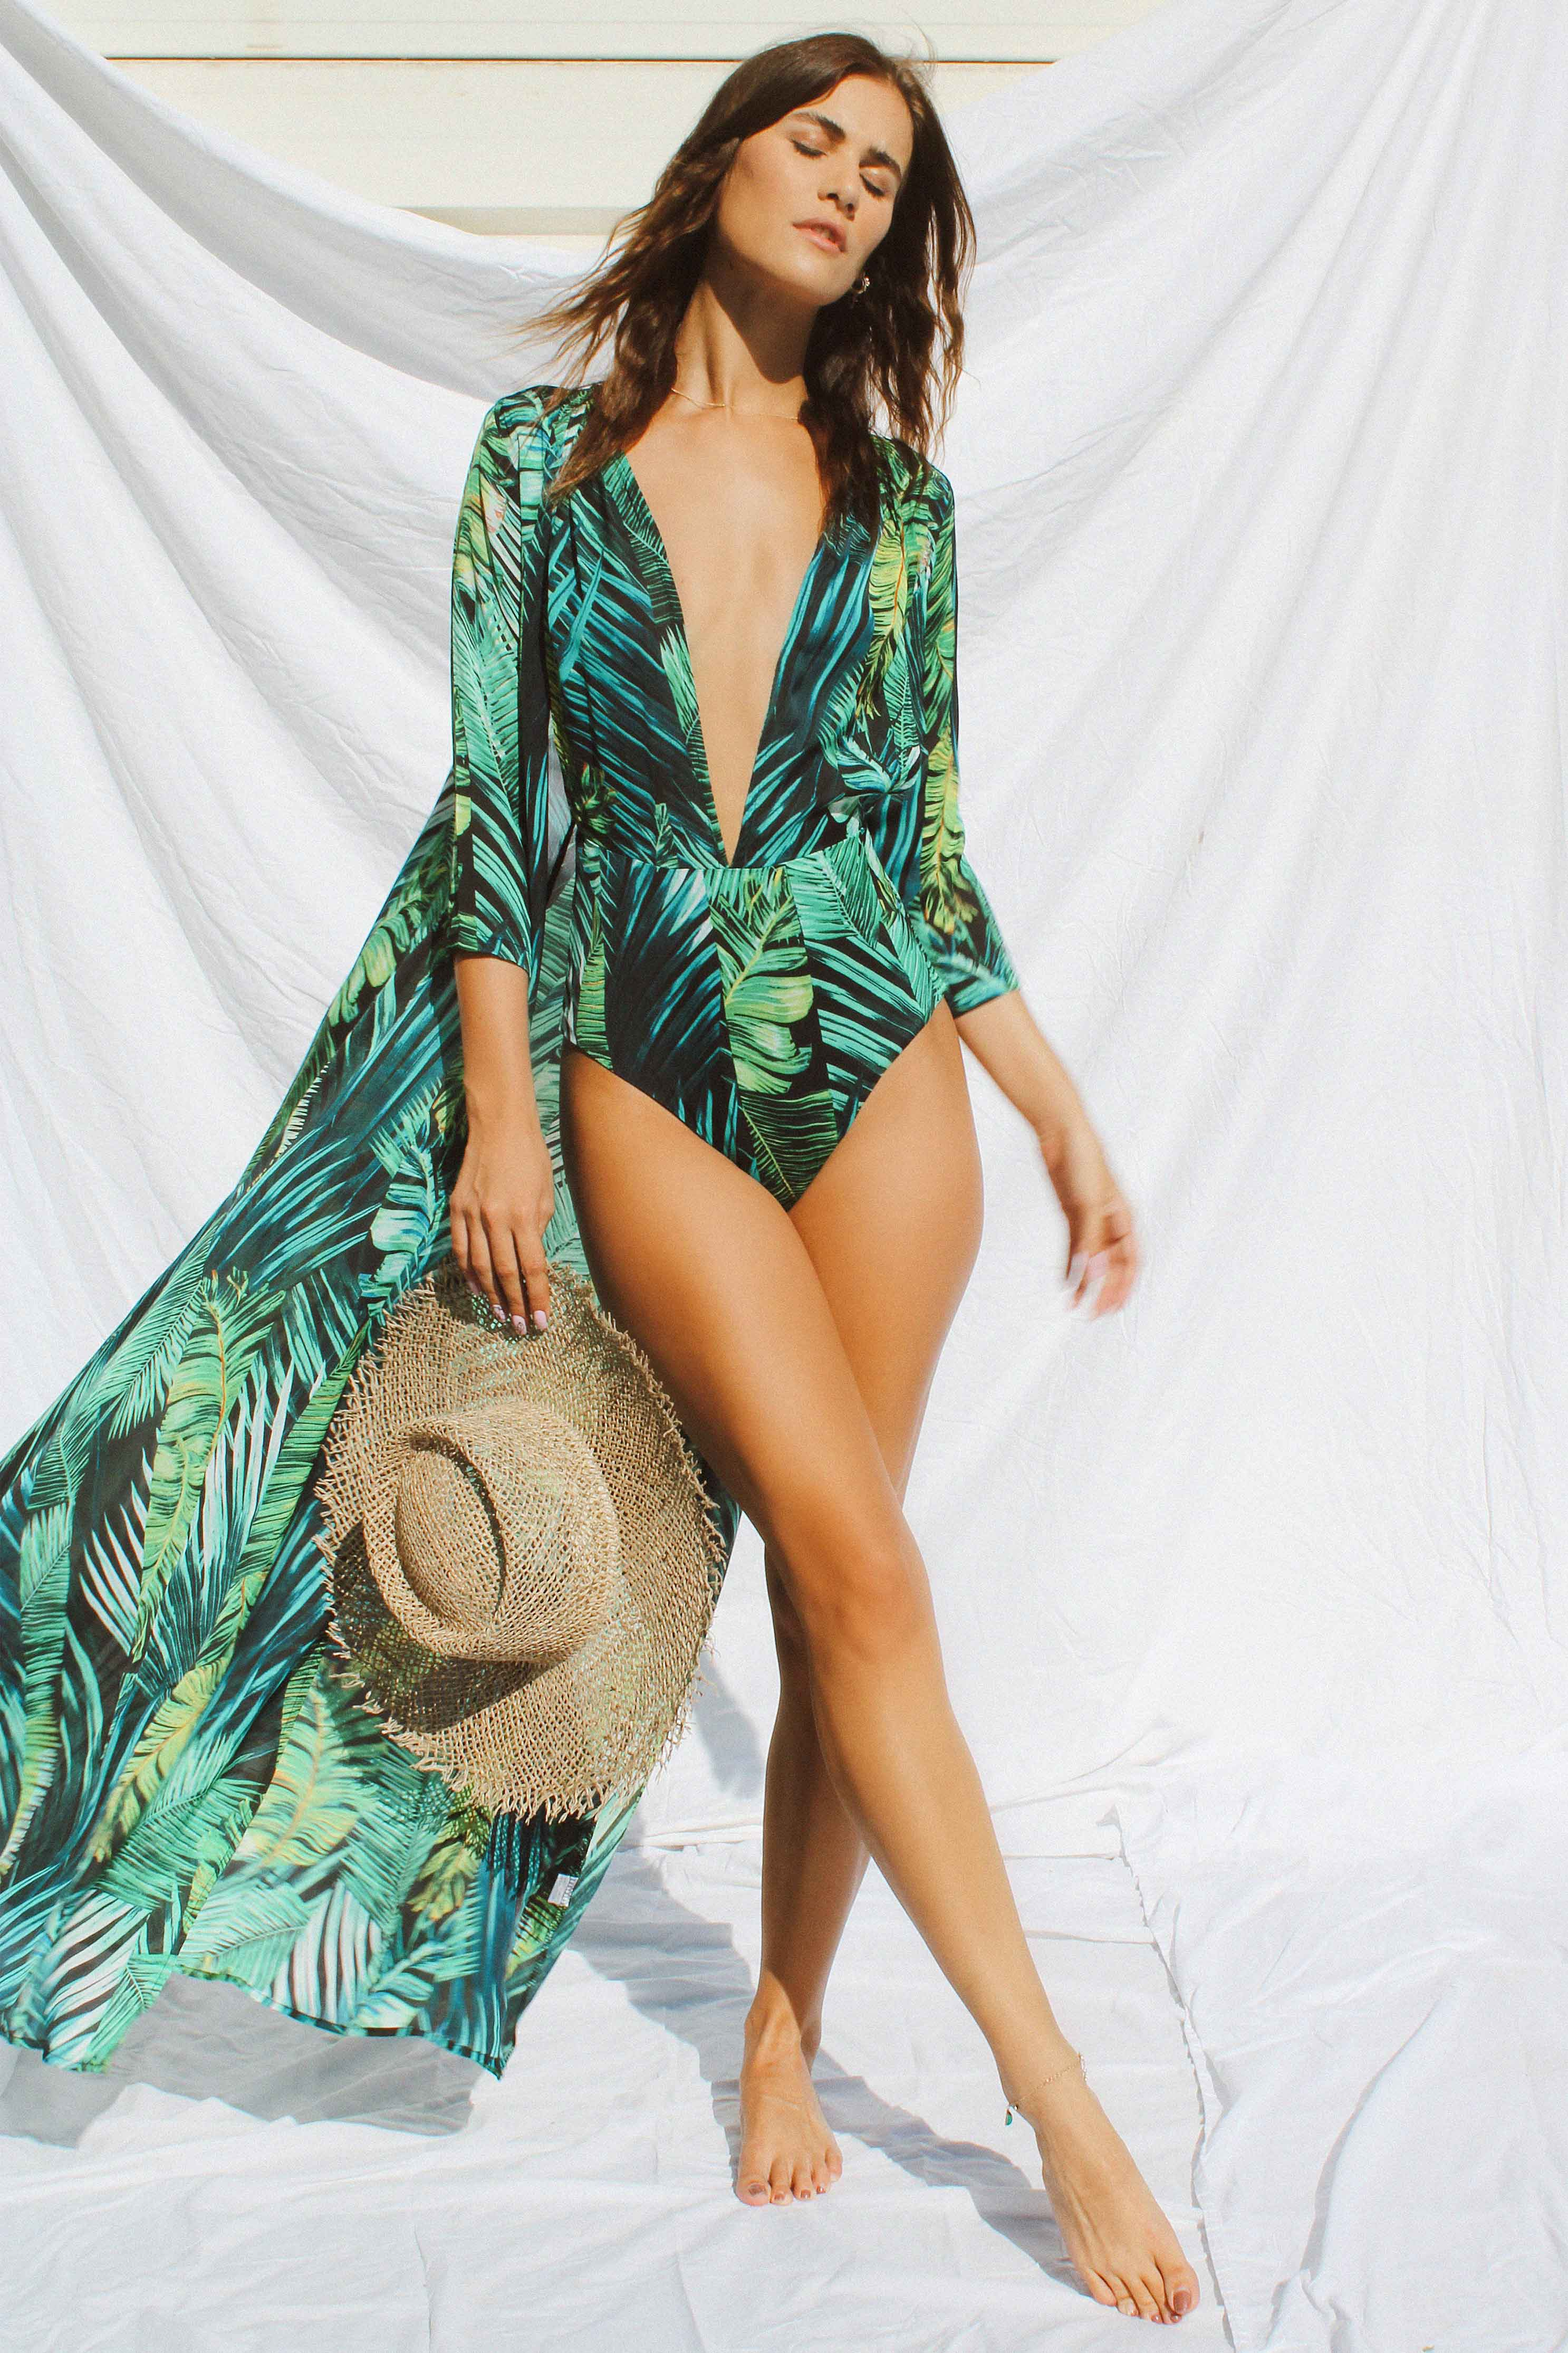 SOFIA BEACH DRESS - Chic Le Frique